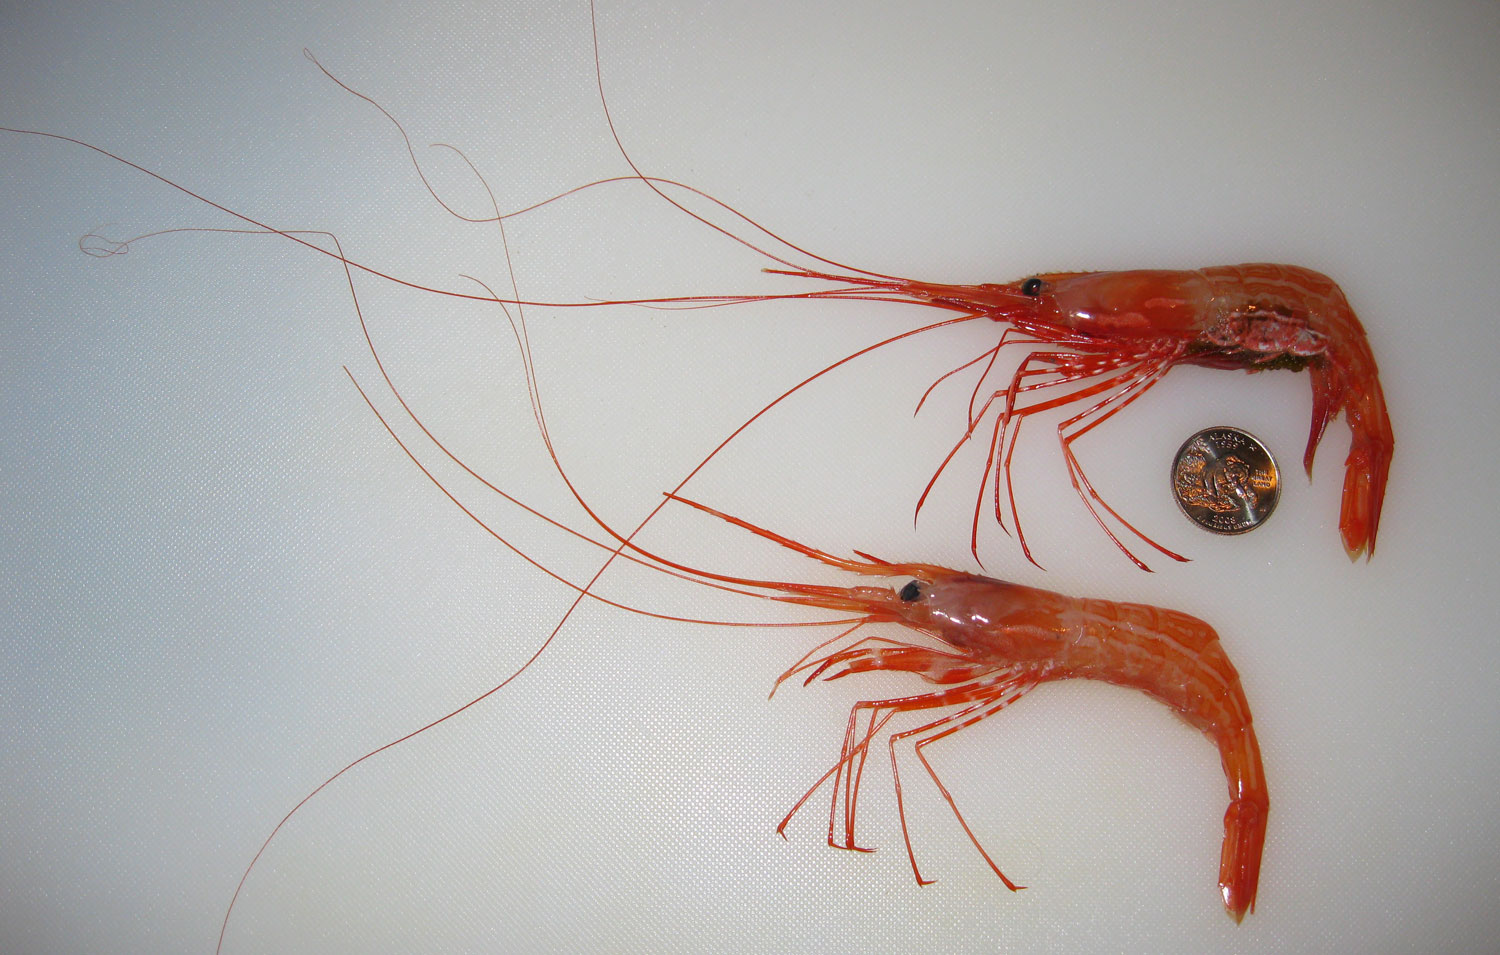 Sidestripe shrimp  (Pandalopsis dispar)   with a quarter to show size. The top shrimp is eggy and the bottom shrimp is not. I buy 'mediums', so sidestripes can be bigger than this. Sidestripes are a mid-sized shrimp for Alaska. The spot prawn is much bigger and several other species are smaller.